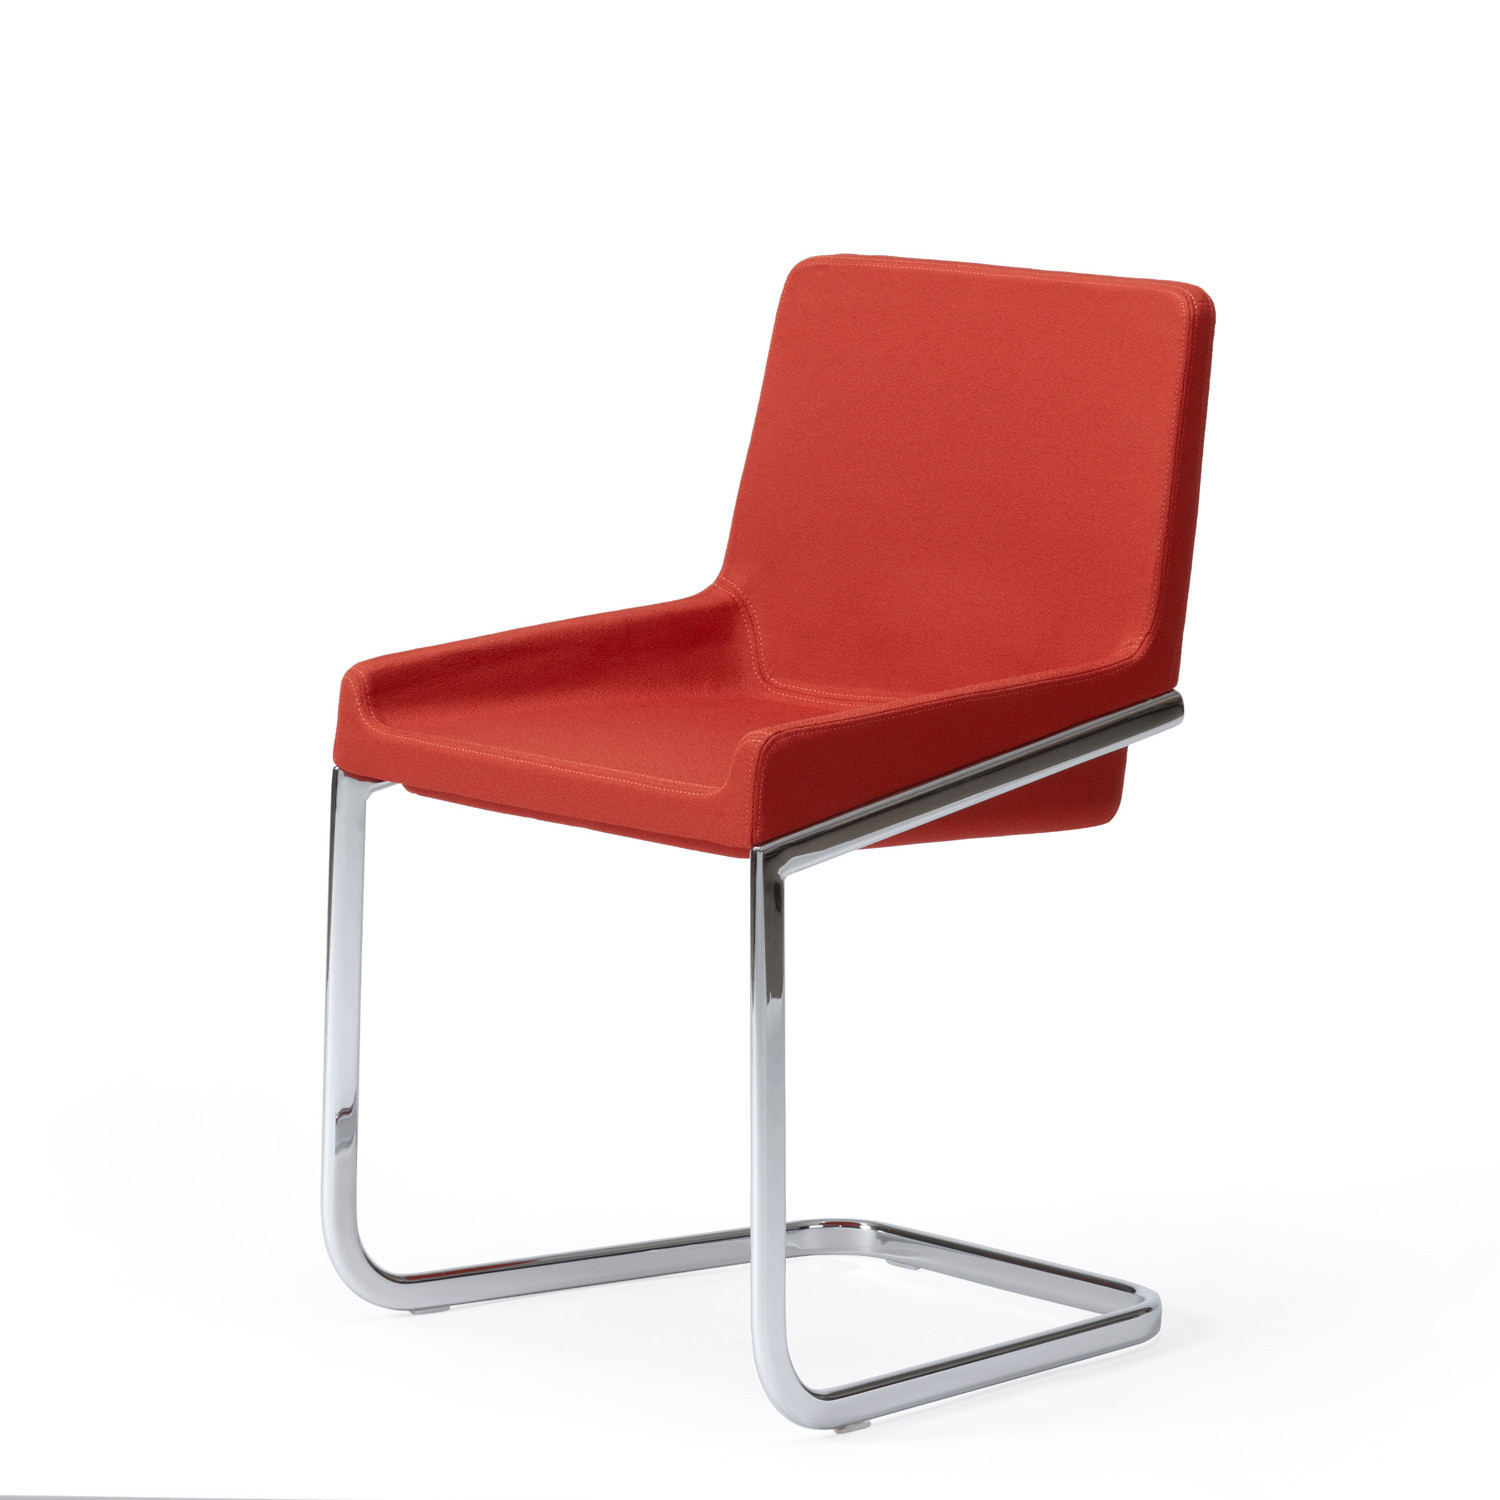 Tonic Chairs Cantilever Base